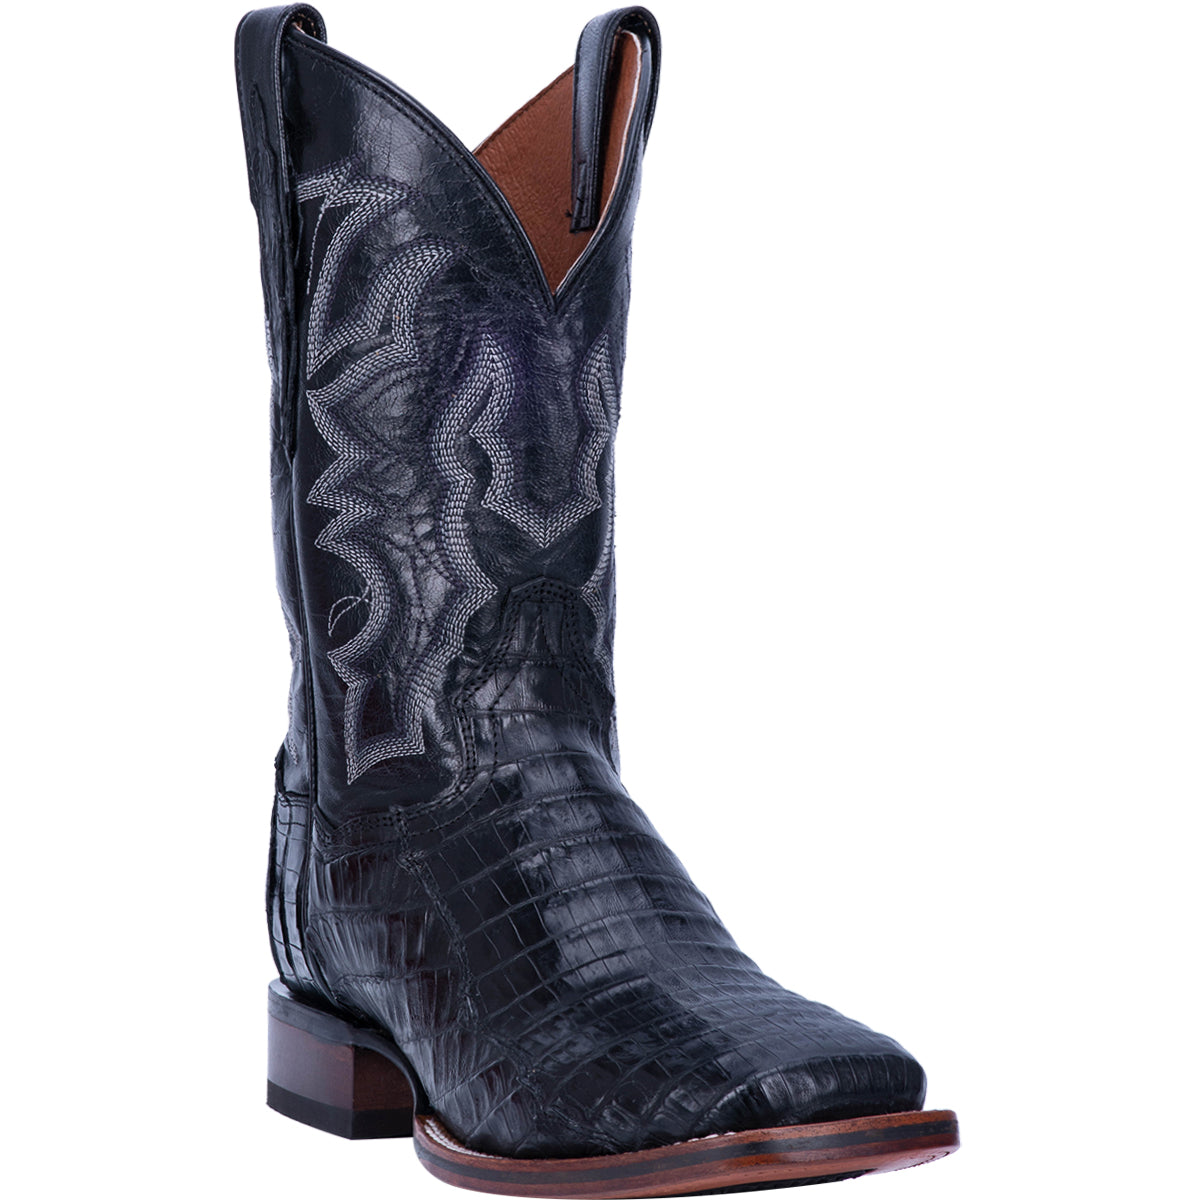 KINGSLY CAIMAN BOOT 5391880257578